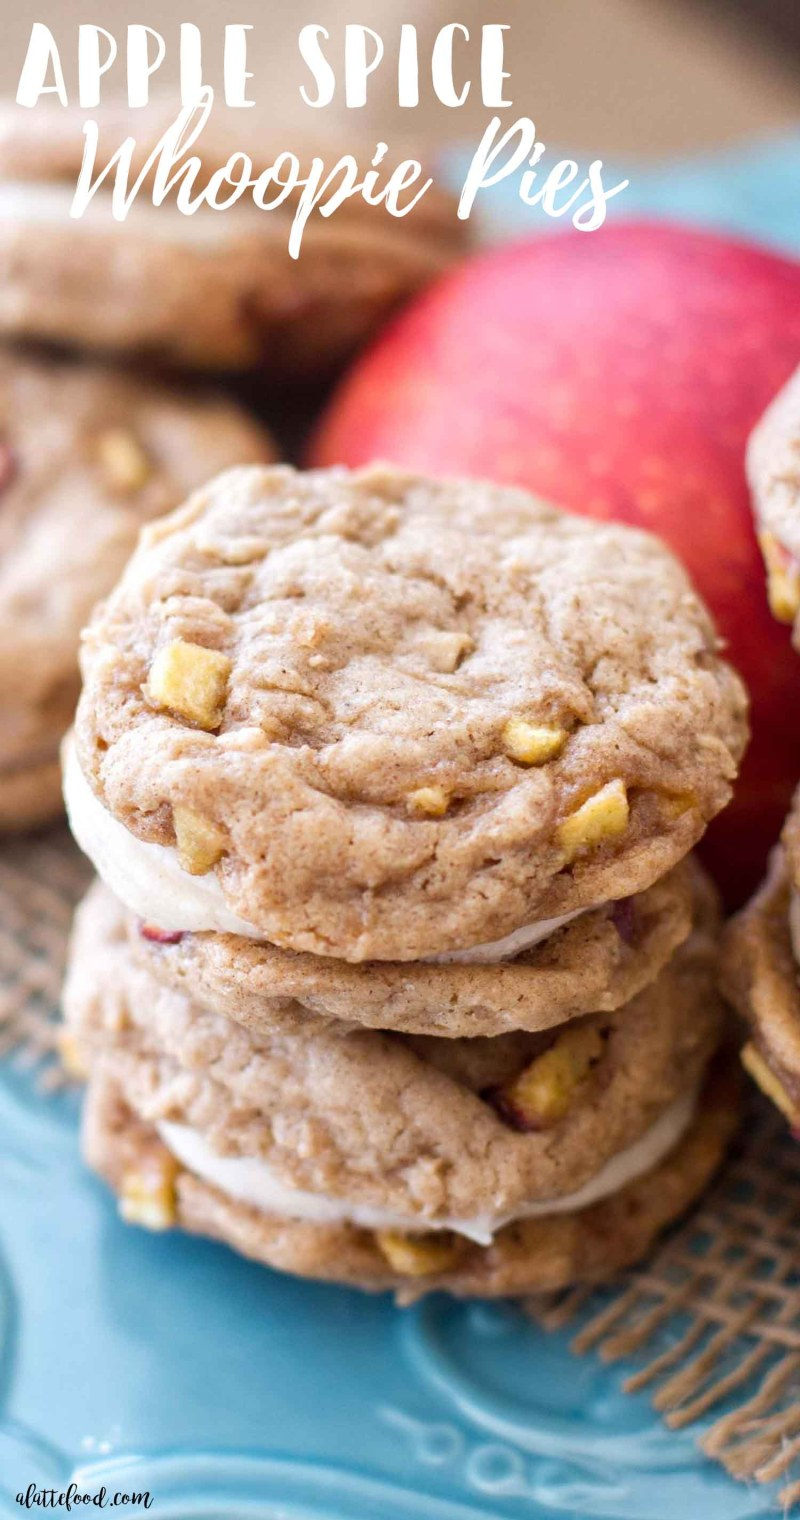 These homemade apple spice whoopie pies are filled with cinnamon spice and baked apples. These sweet apple cookies are filled with a rich, cinnamon cream cheese filling. These apple whoopie pies soft, sweet, and taste like fall! They're my currentobsession. One of the best fall desserts, my friends. how to make whoopie pies, apple cookies, thanksgiving recipes